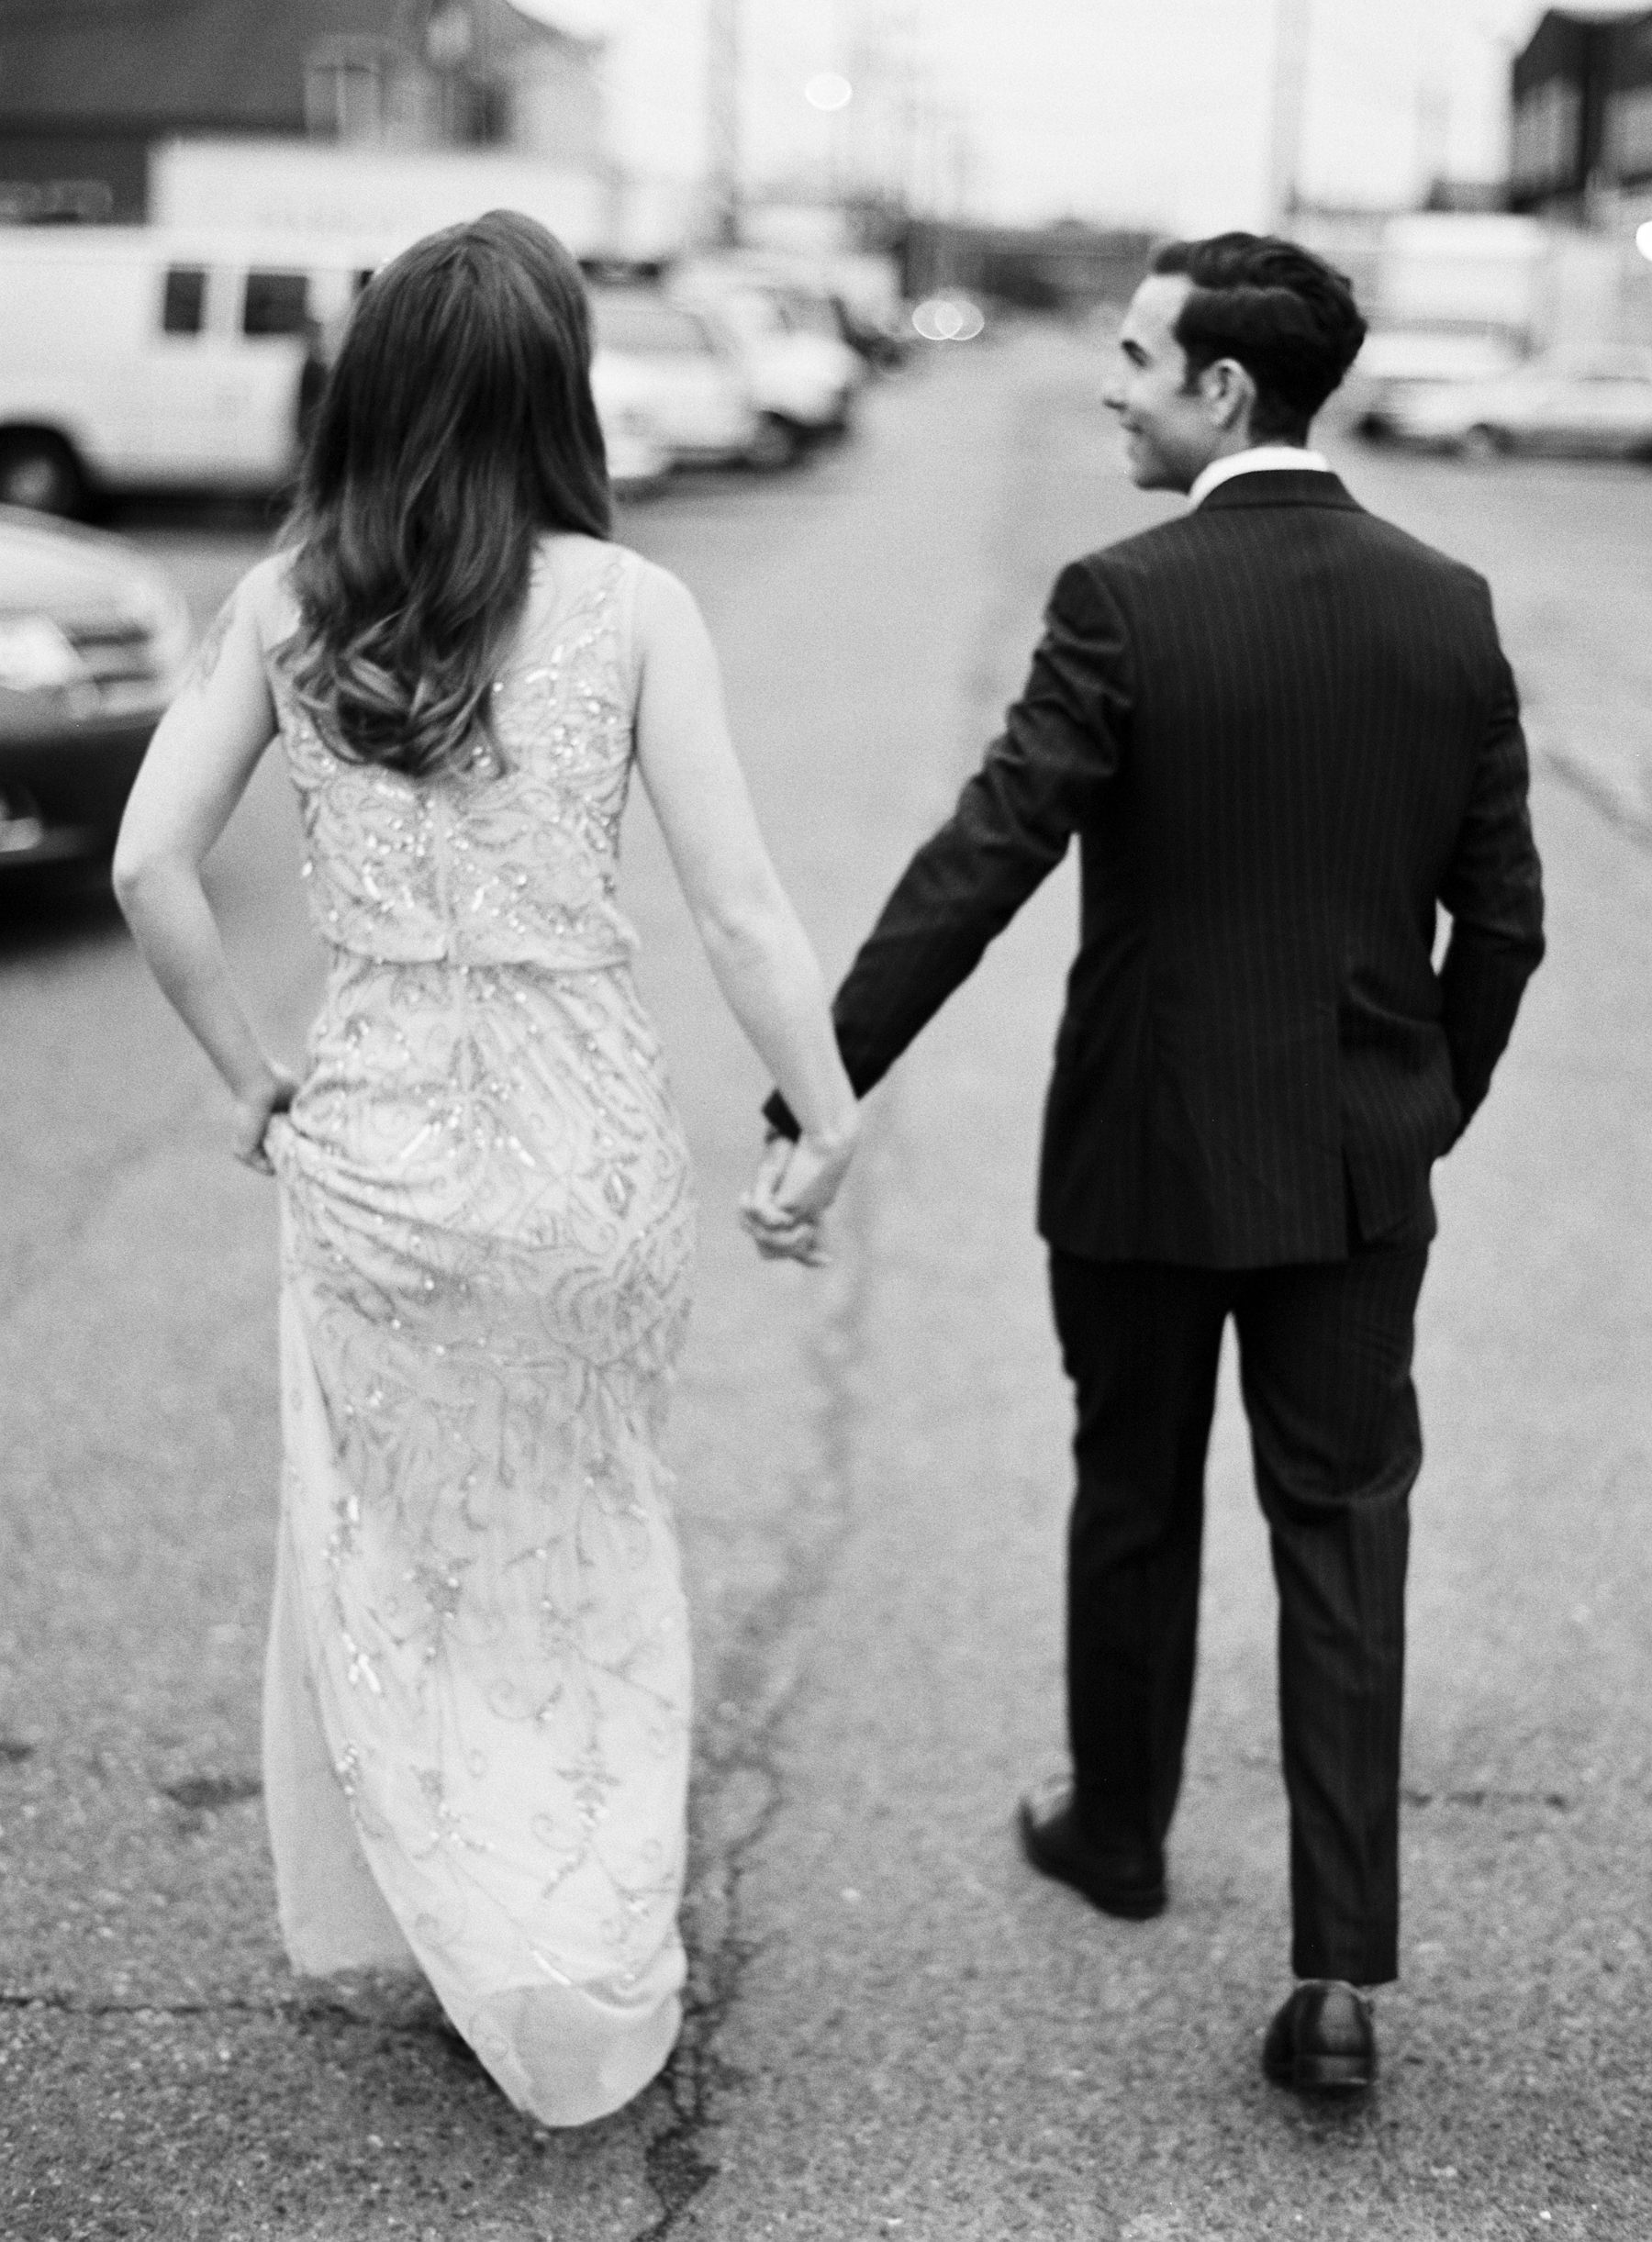 057-bridal-couple-walking-away-on-black-and-white-medium-format-film.jpg